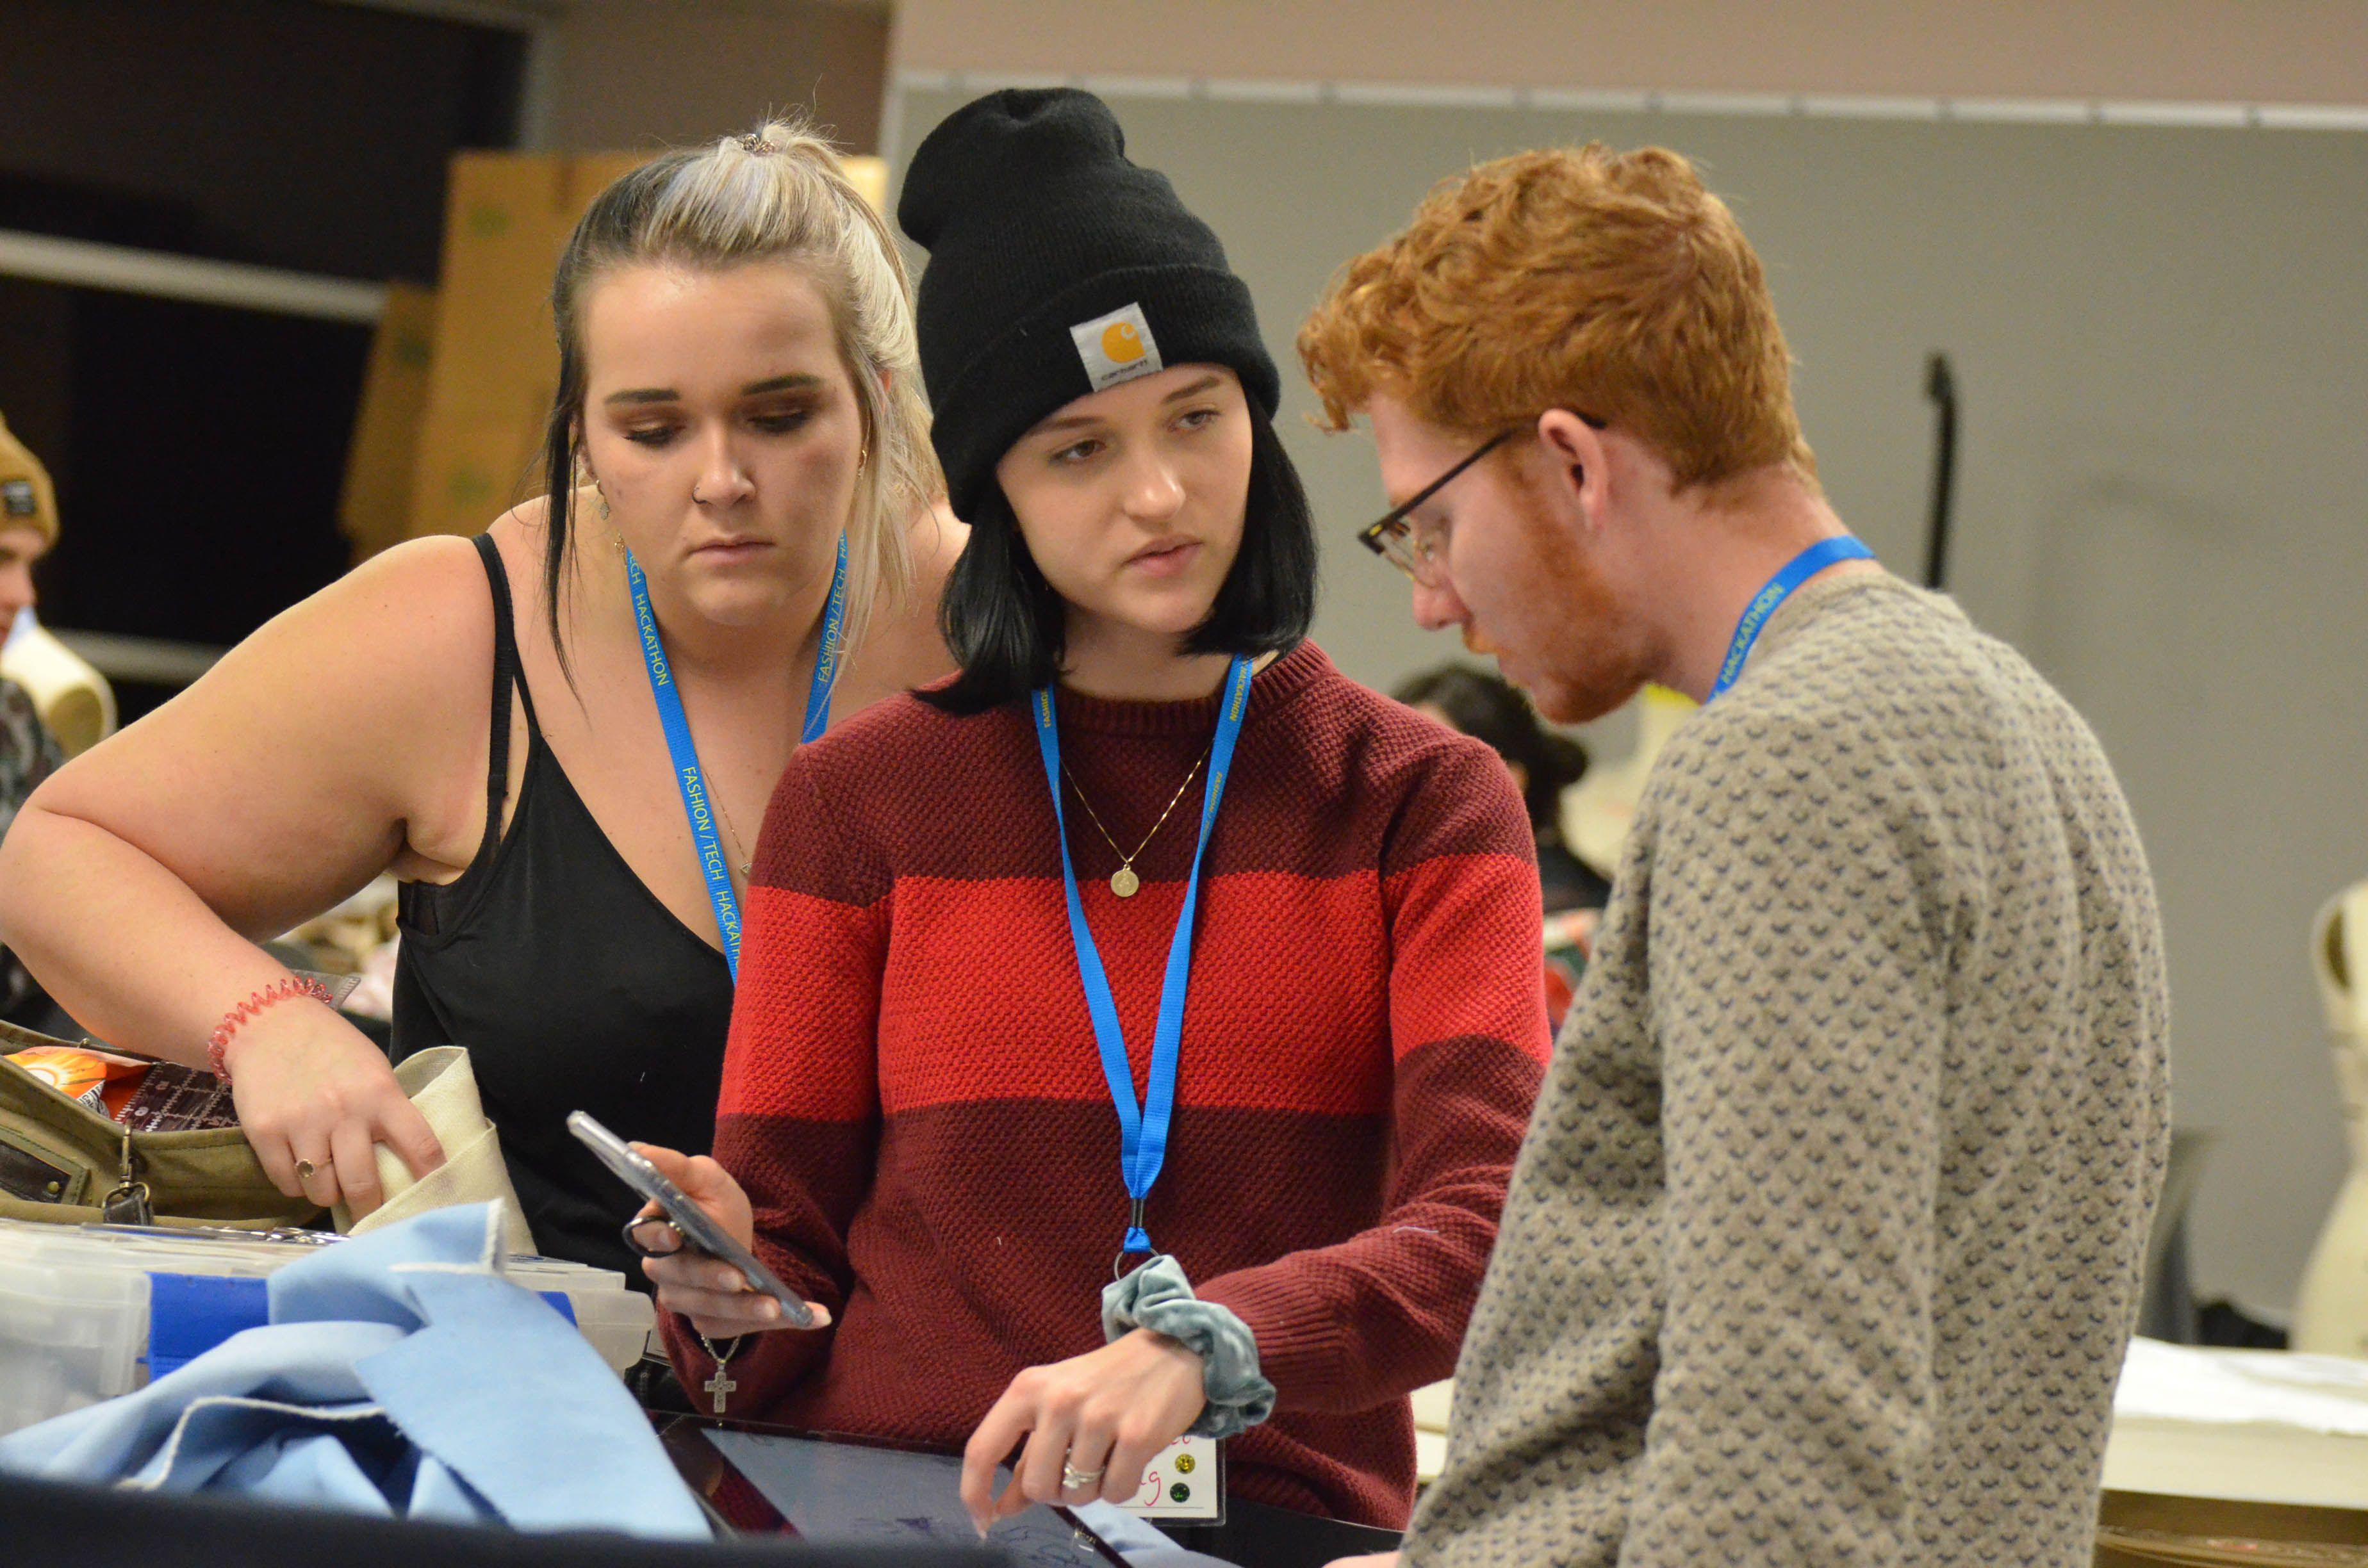 Students work during the first night of the Fashion Tech Hackathon